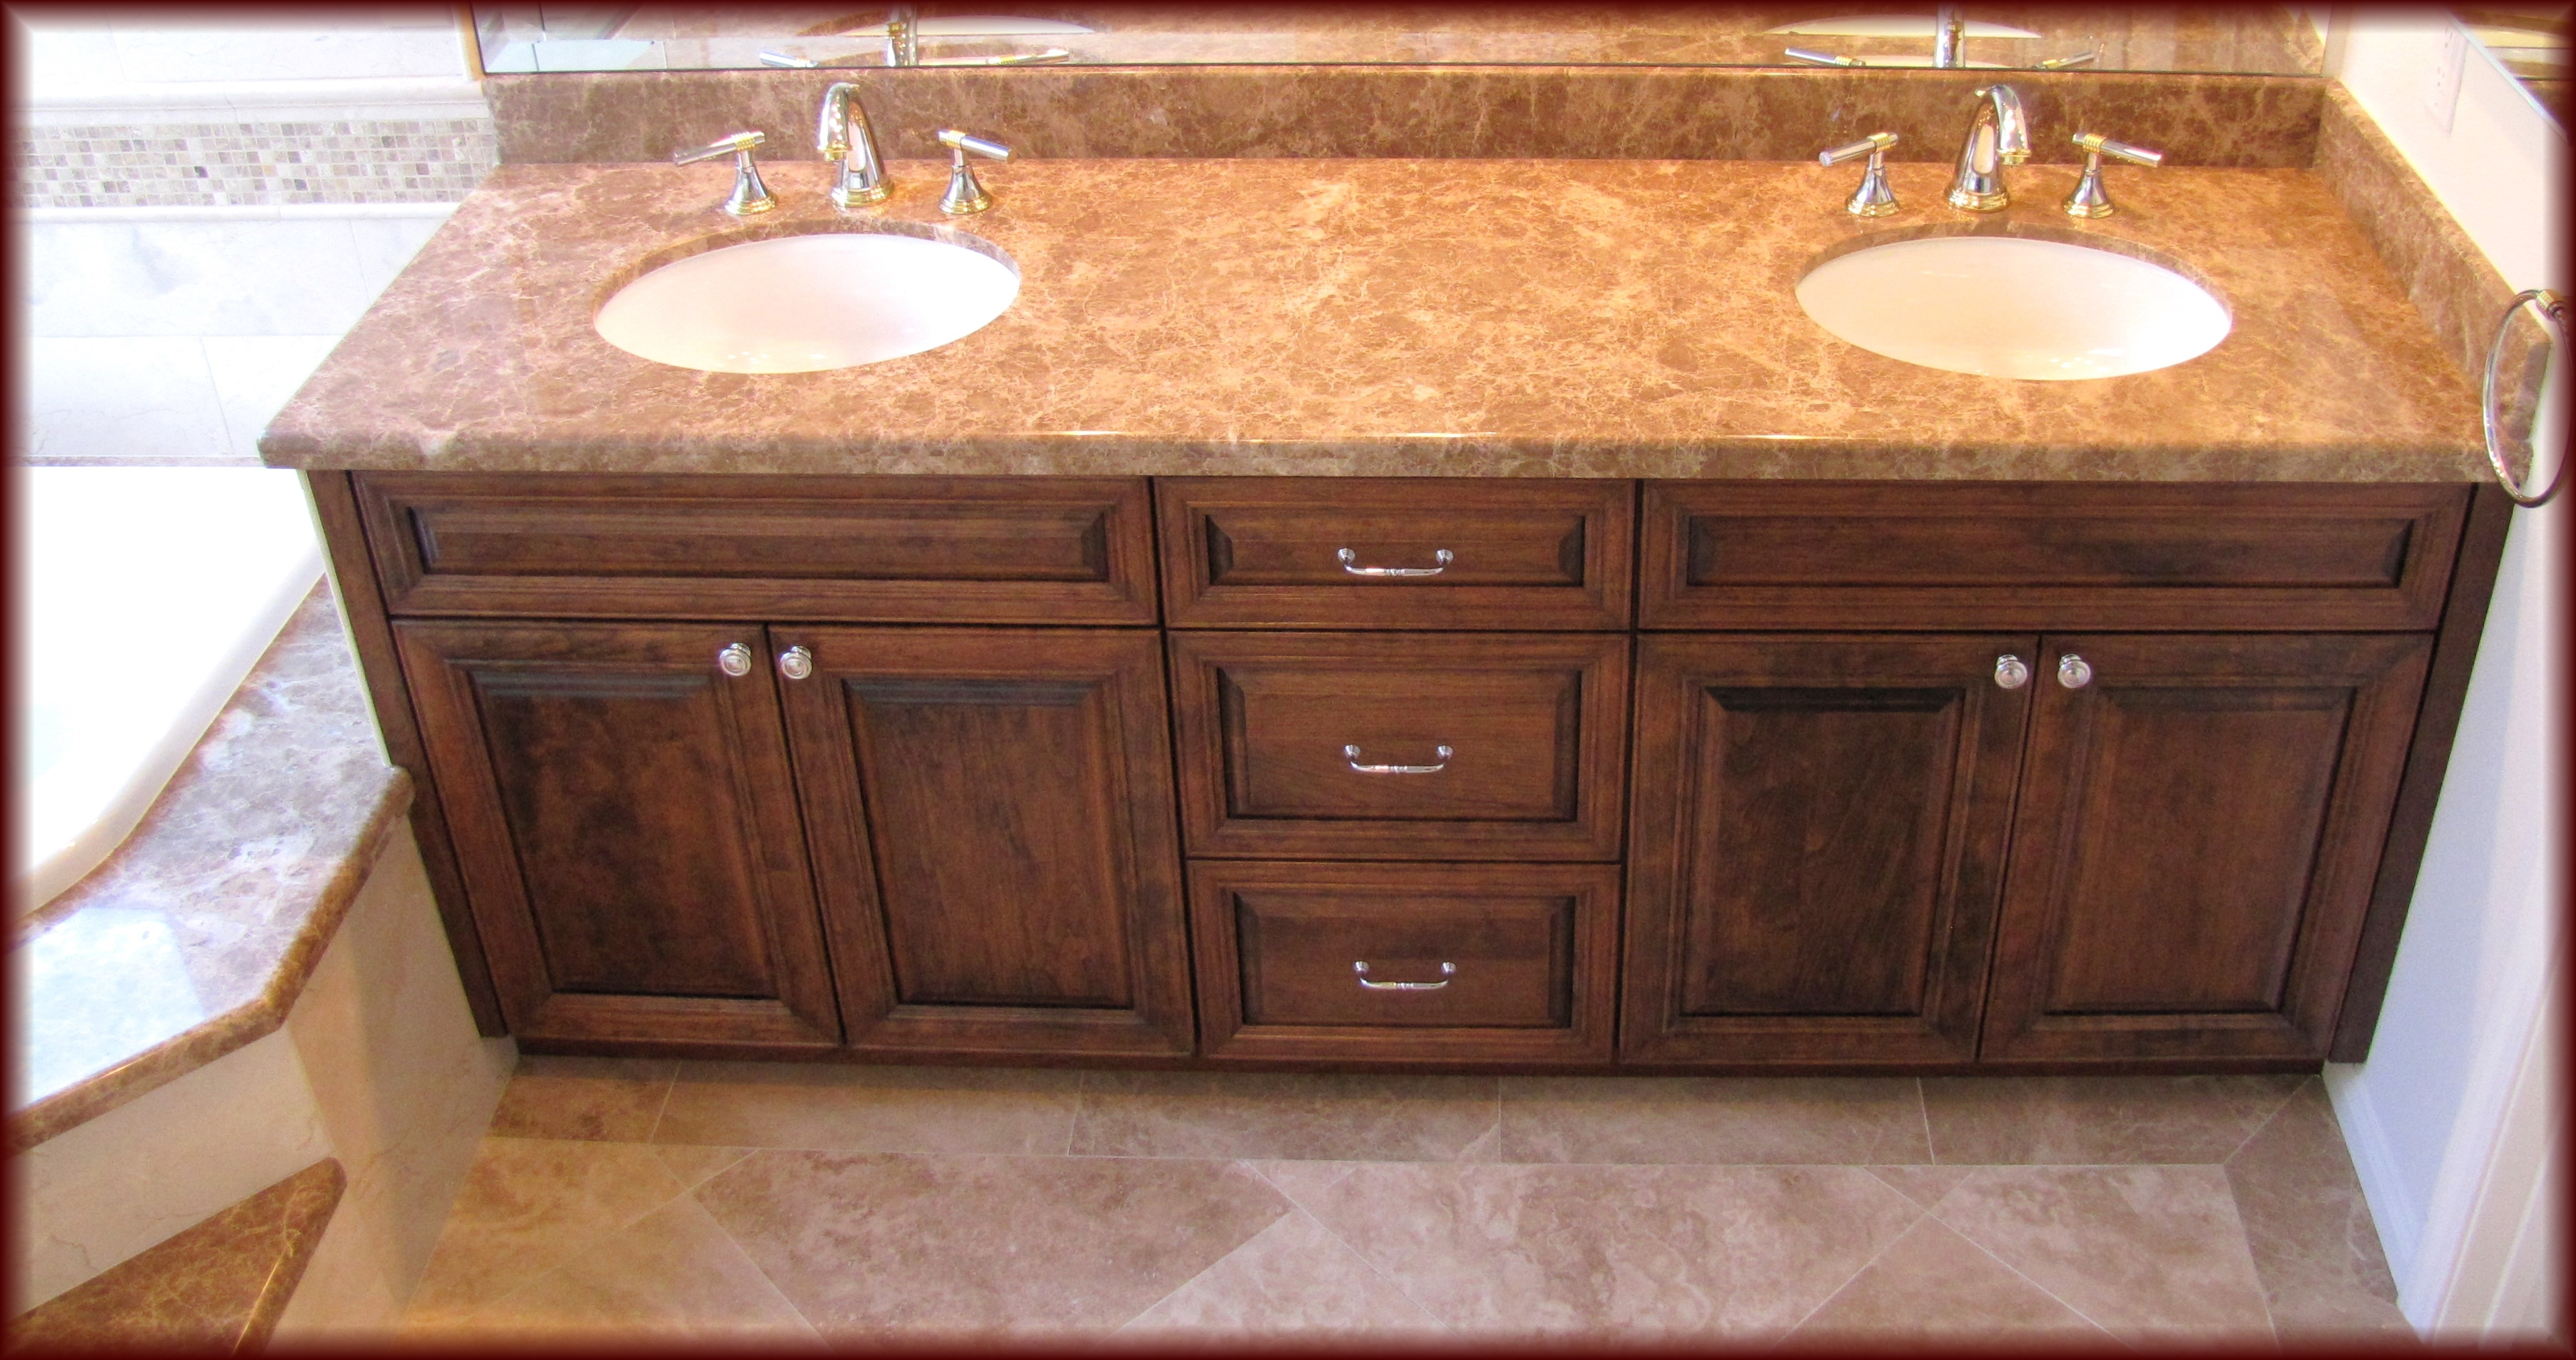 How Do You Restain Bathroom Cabinets